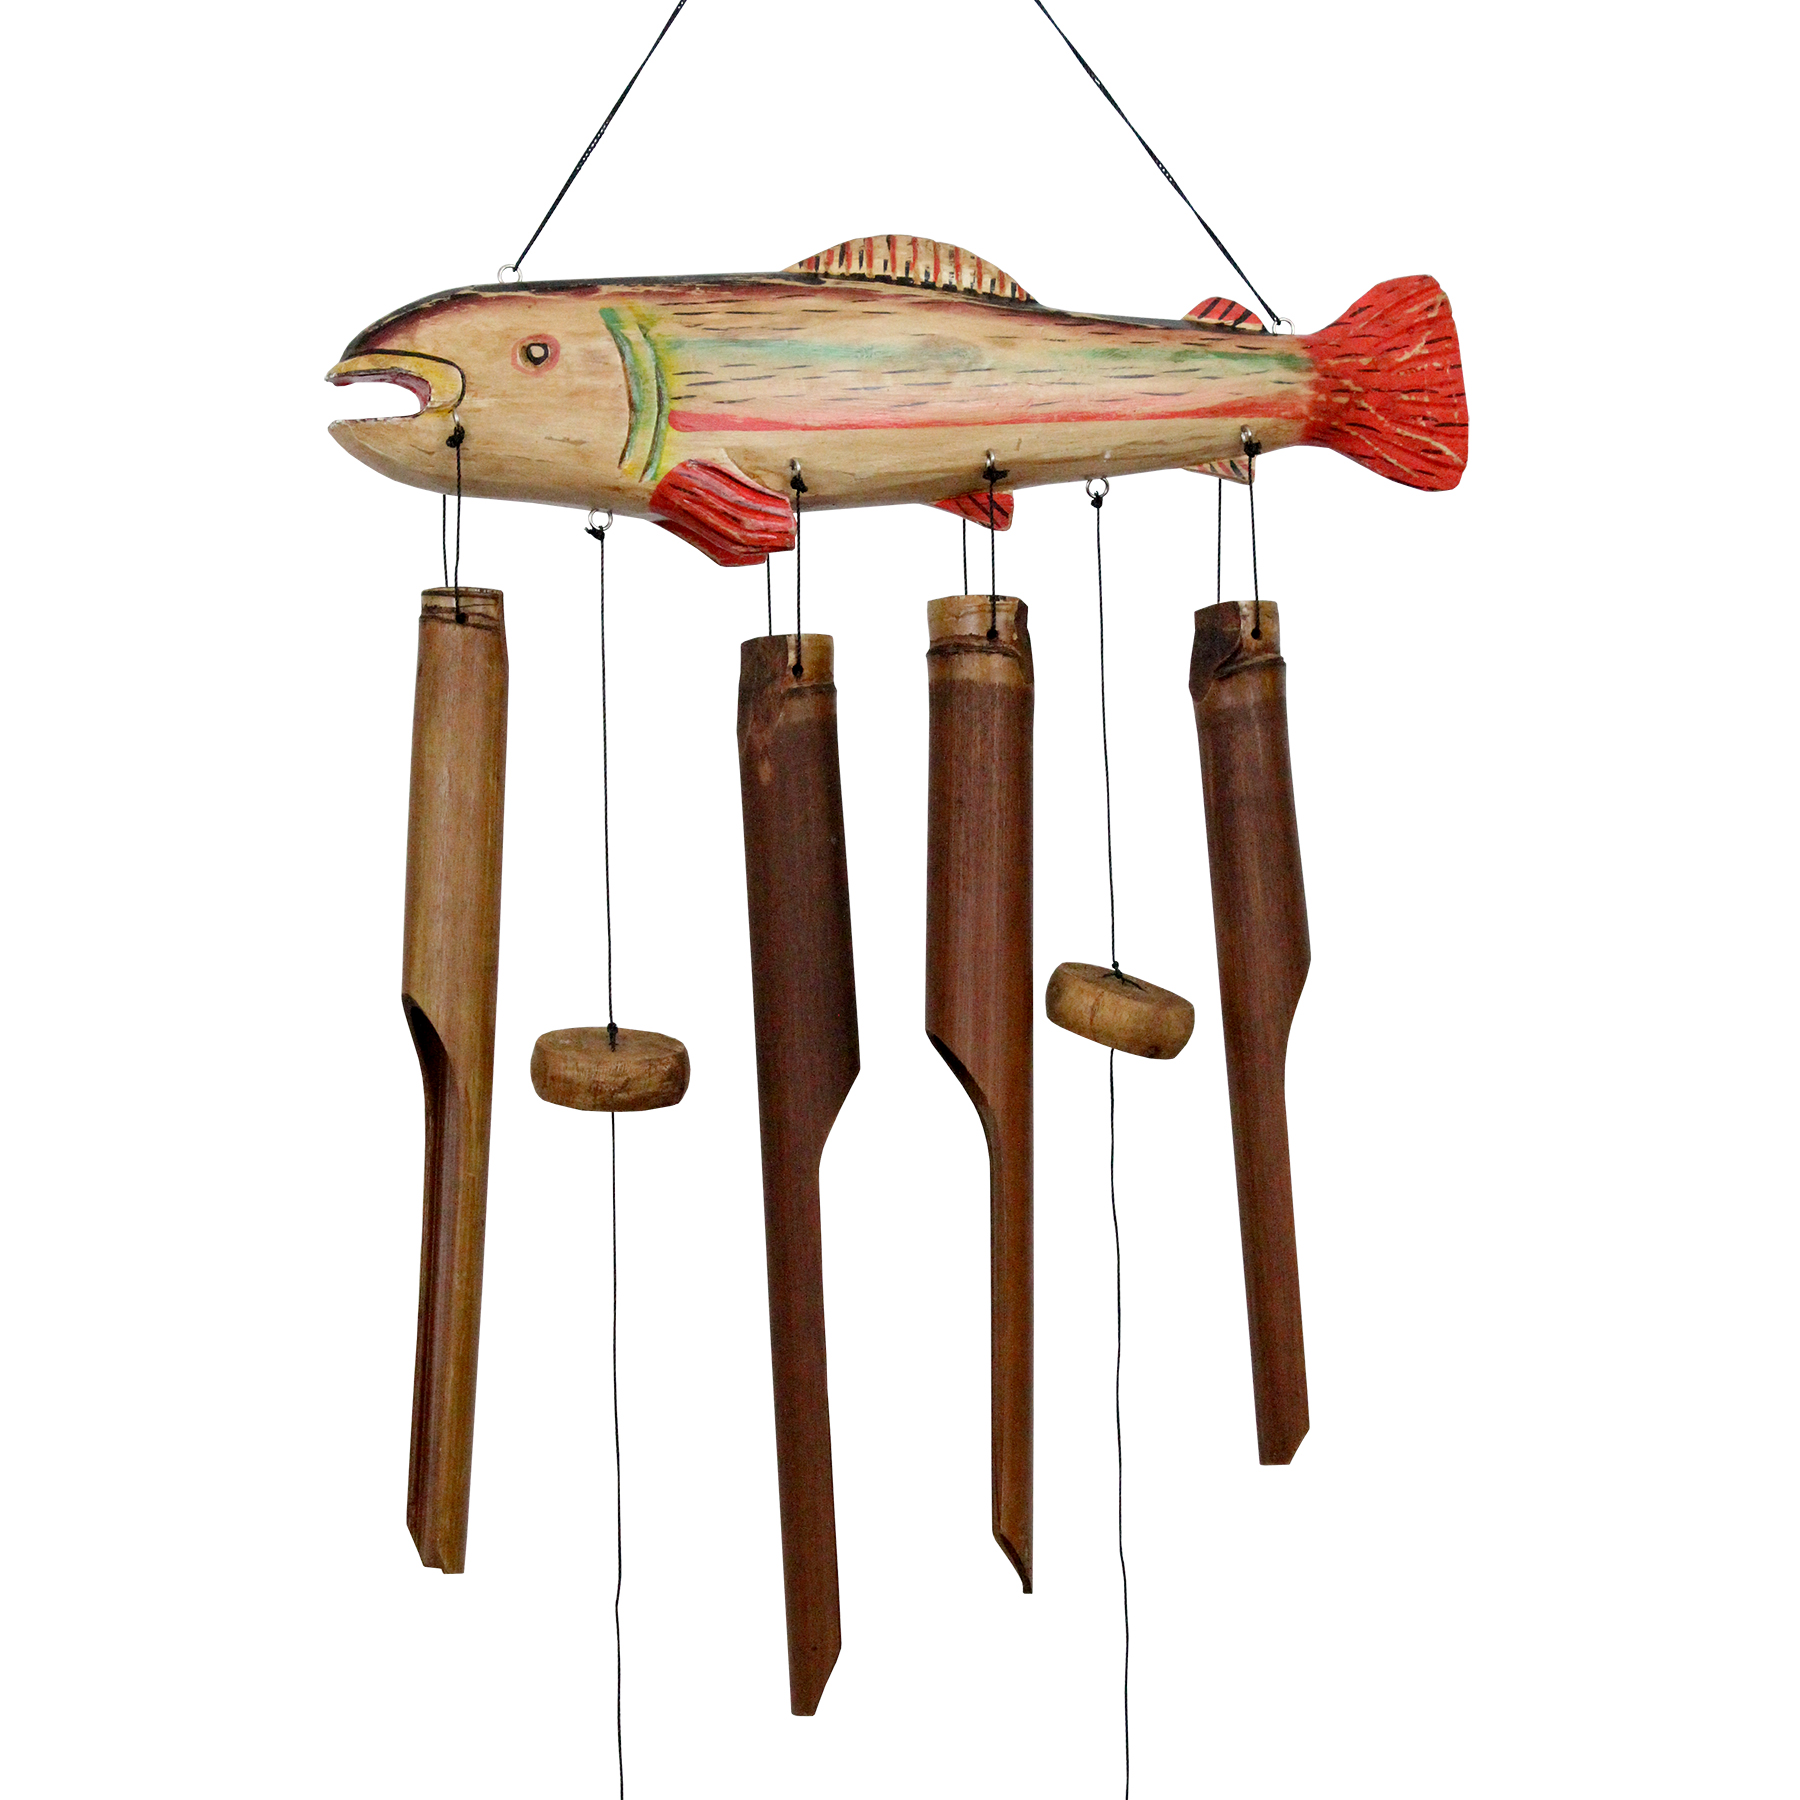 102 - Trout Bamboo Wind Chime